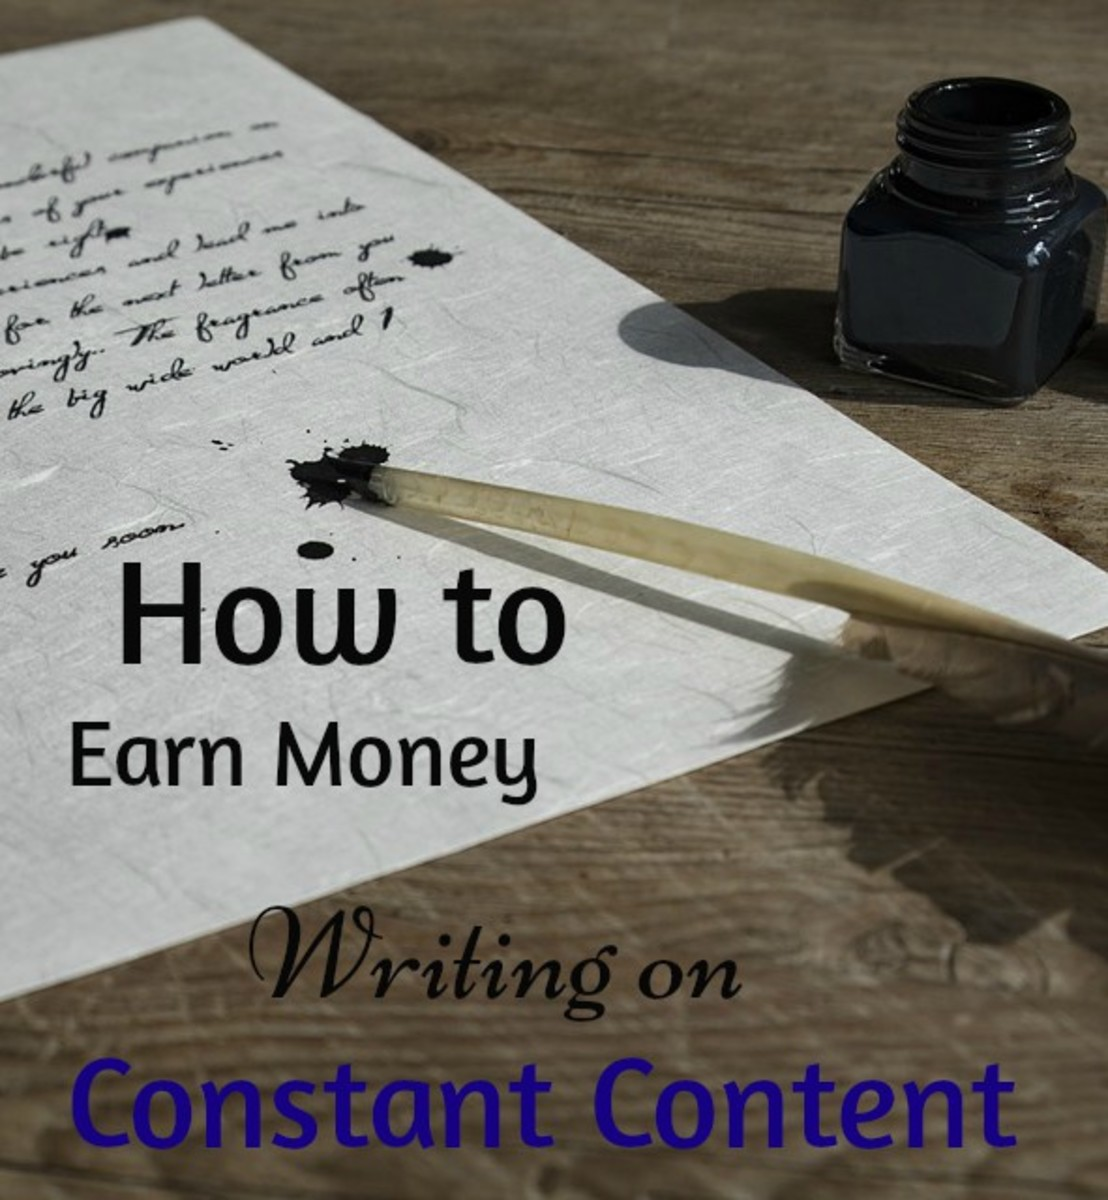 You can earn a little side income by using Constant Content!